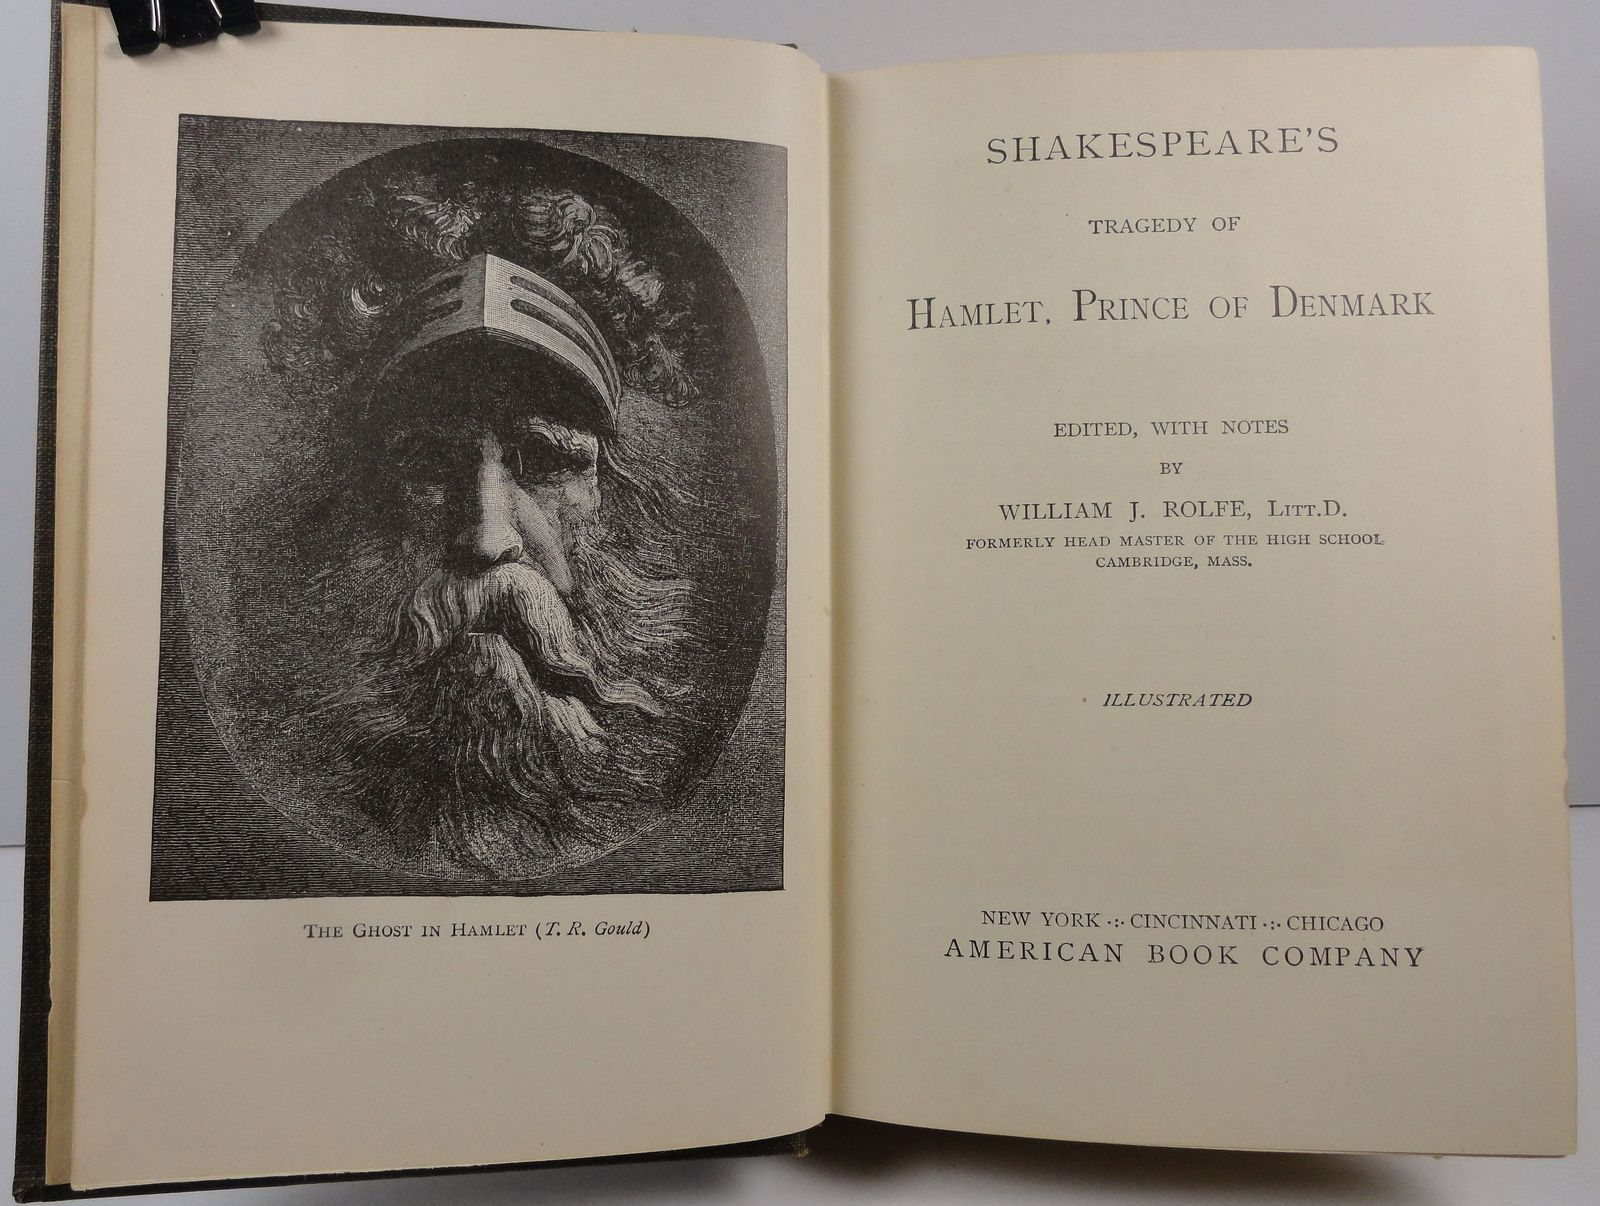 Shakespeare's Tragedy of Hamlet edited by William Rolfe 1906